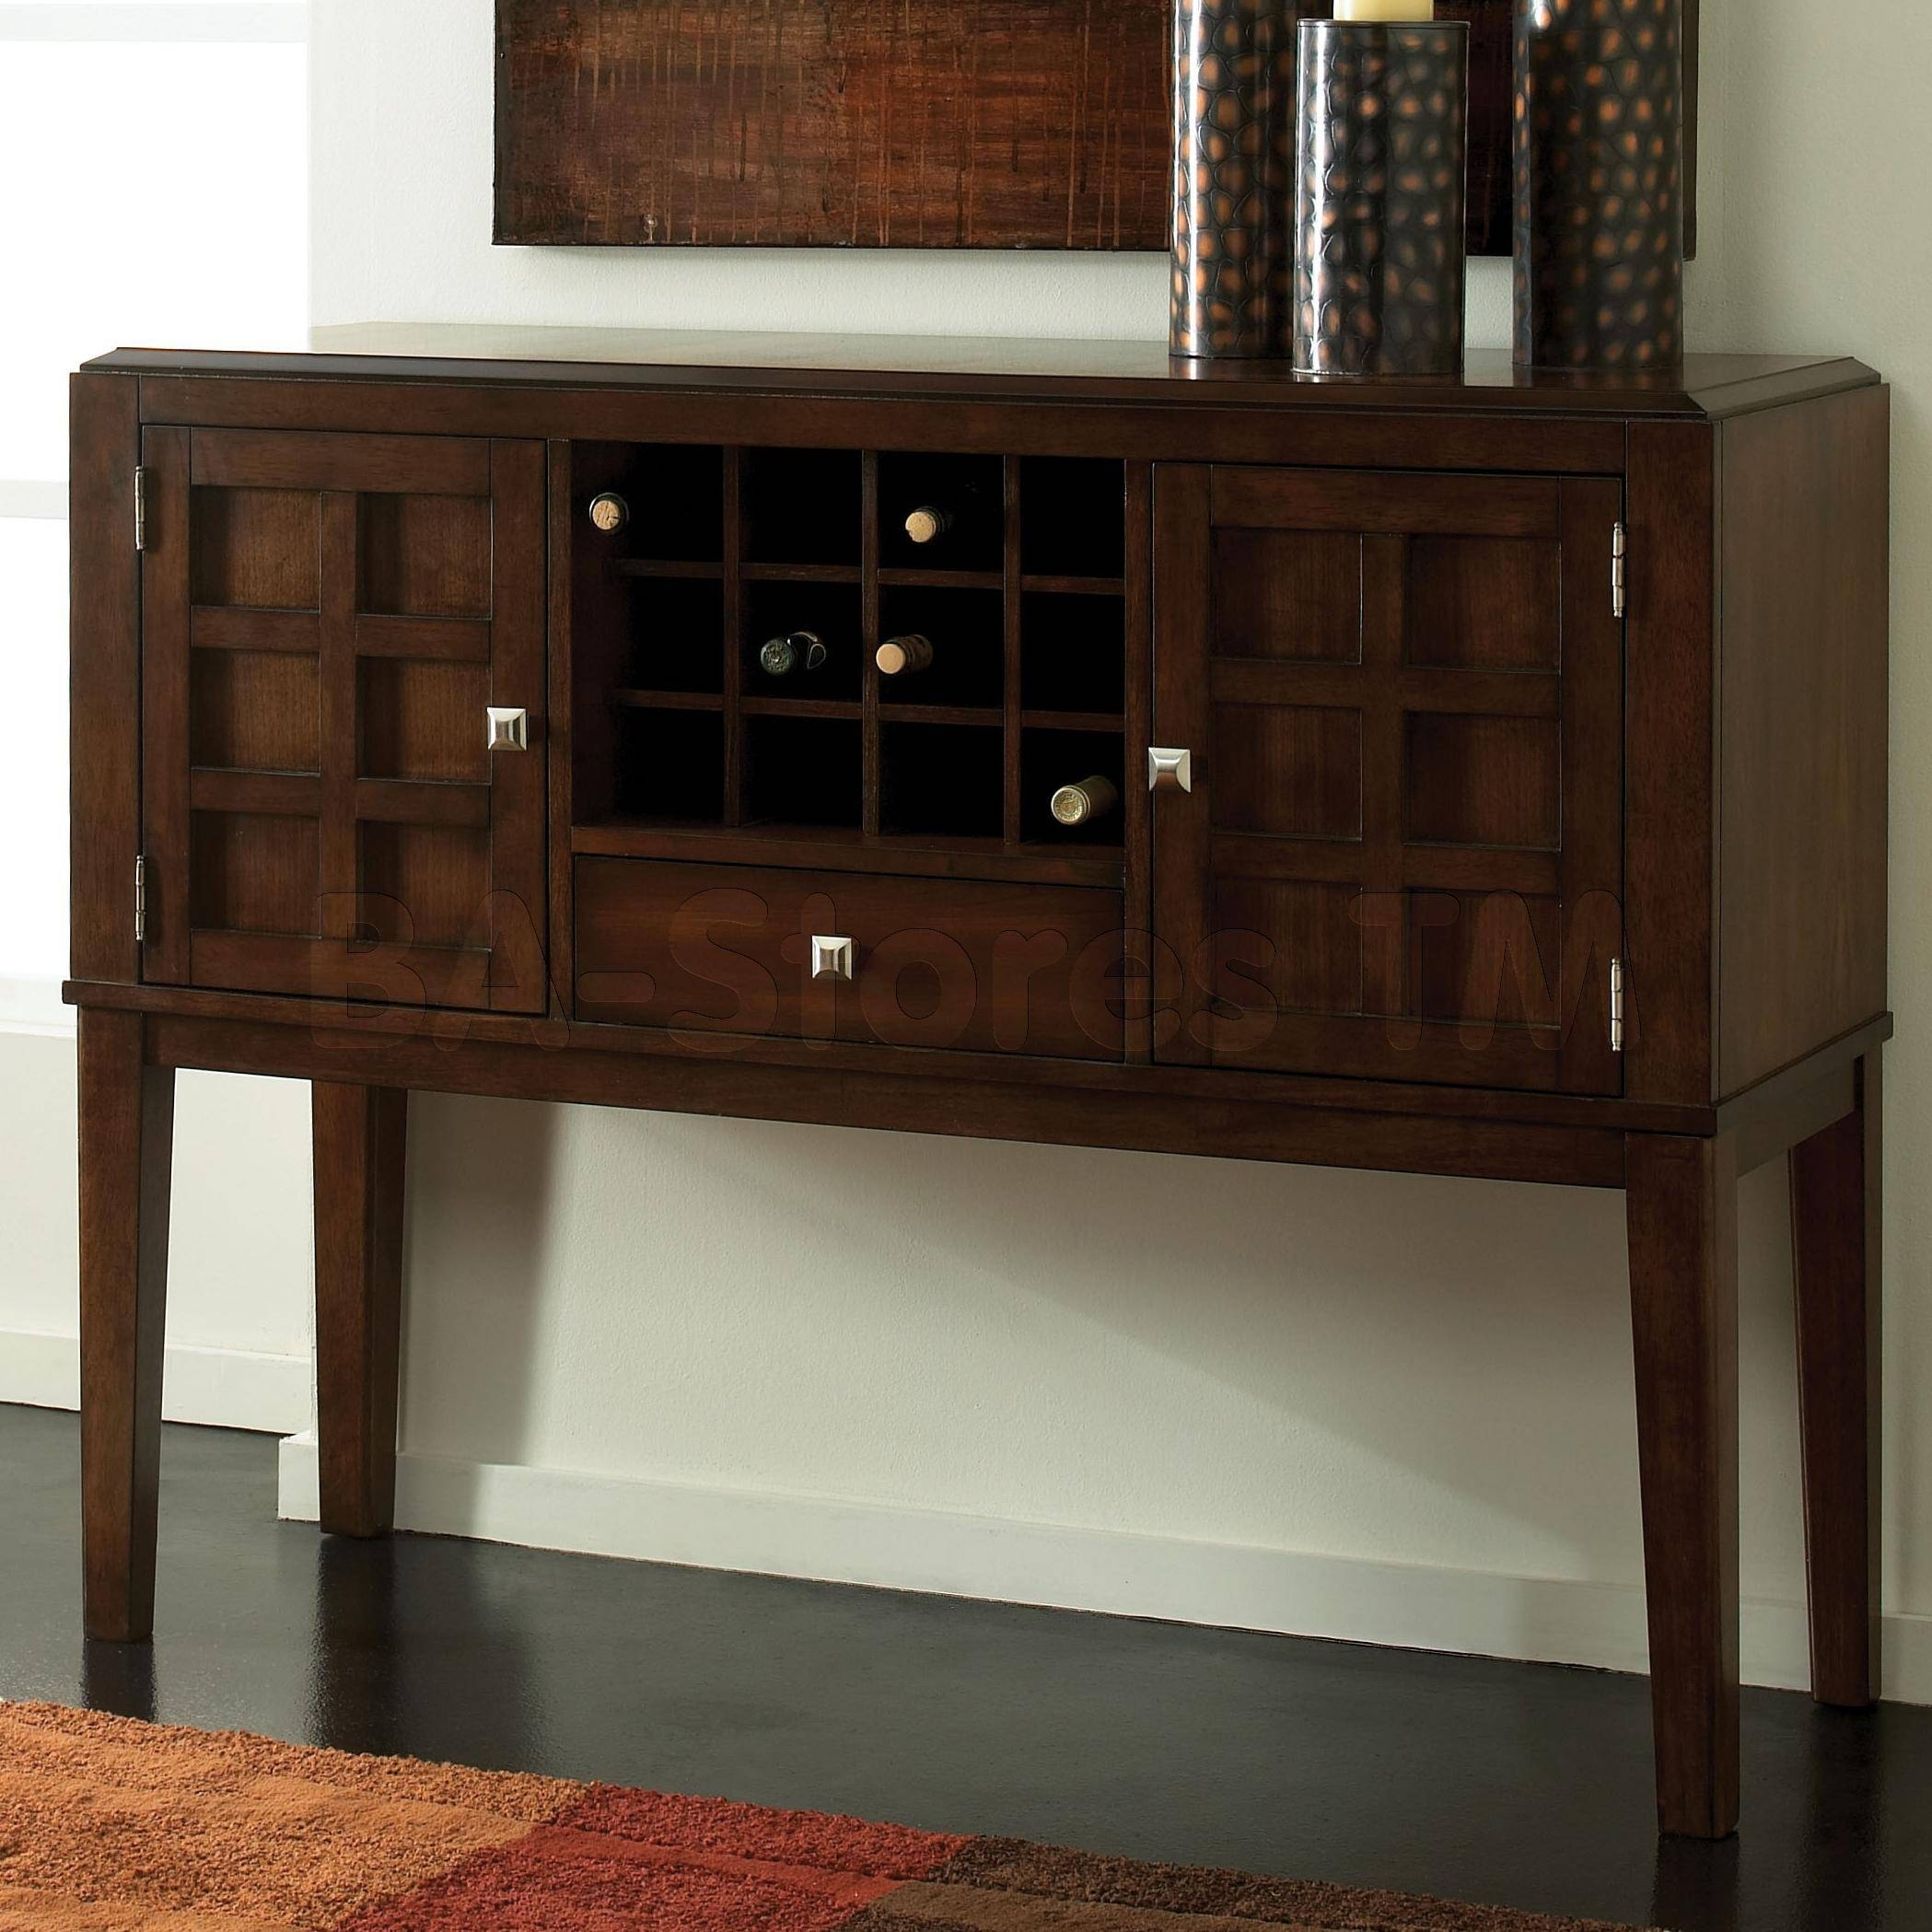 Unique Dining Room Buffets Sideboards - Bjdgjy intended for Dining Room With Sideboards (Image 15 of 15)